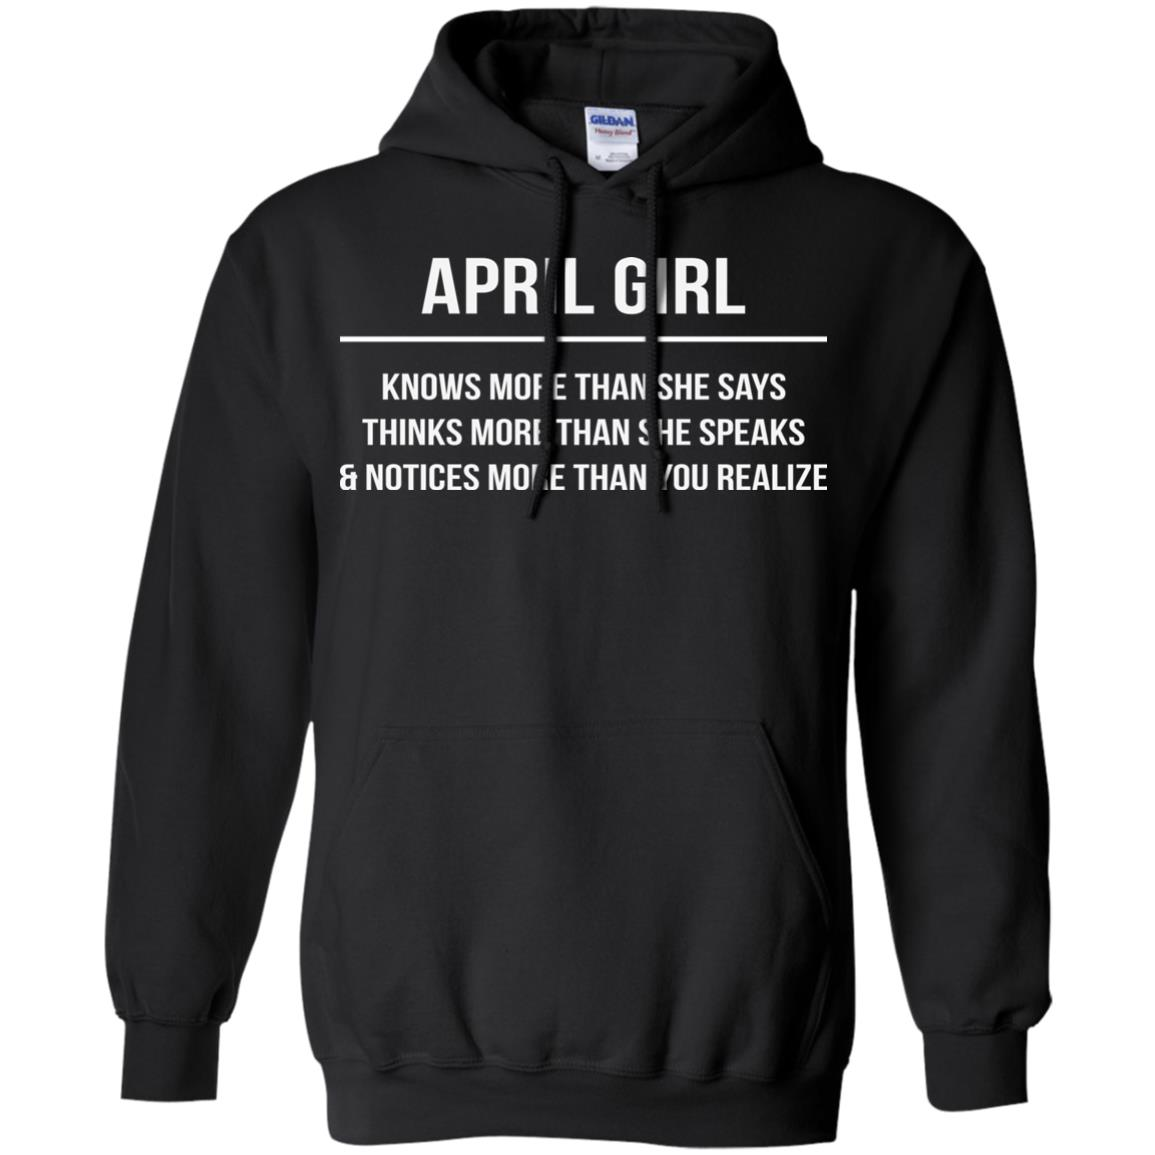 image 2593 - April girl knows more than she says shirt, tank top, hoodie